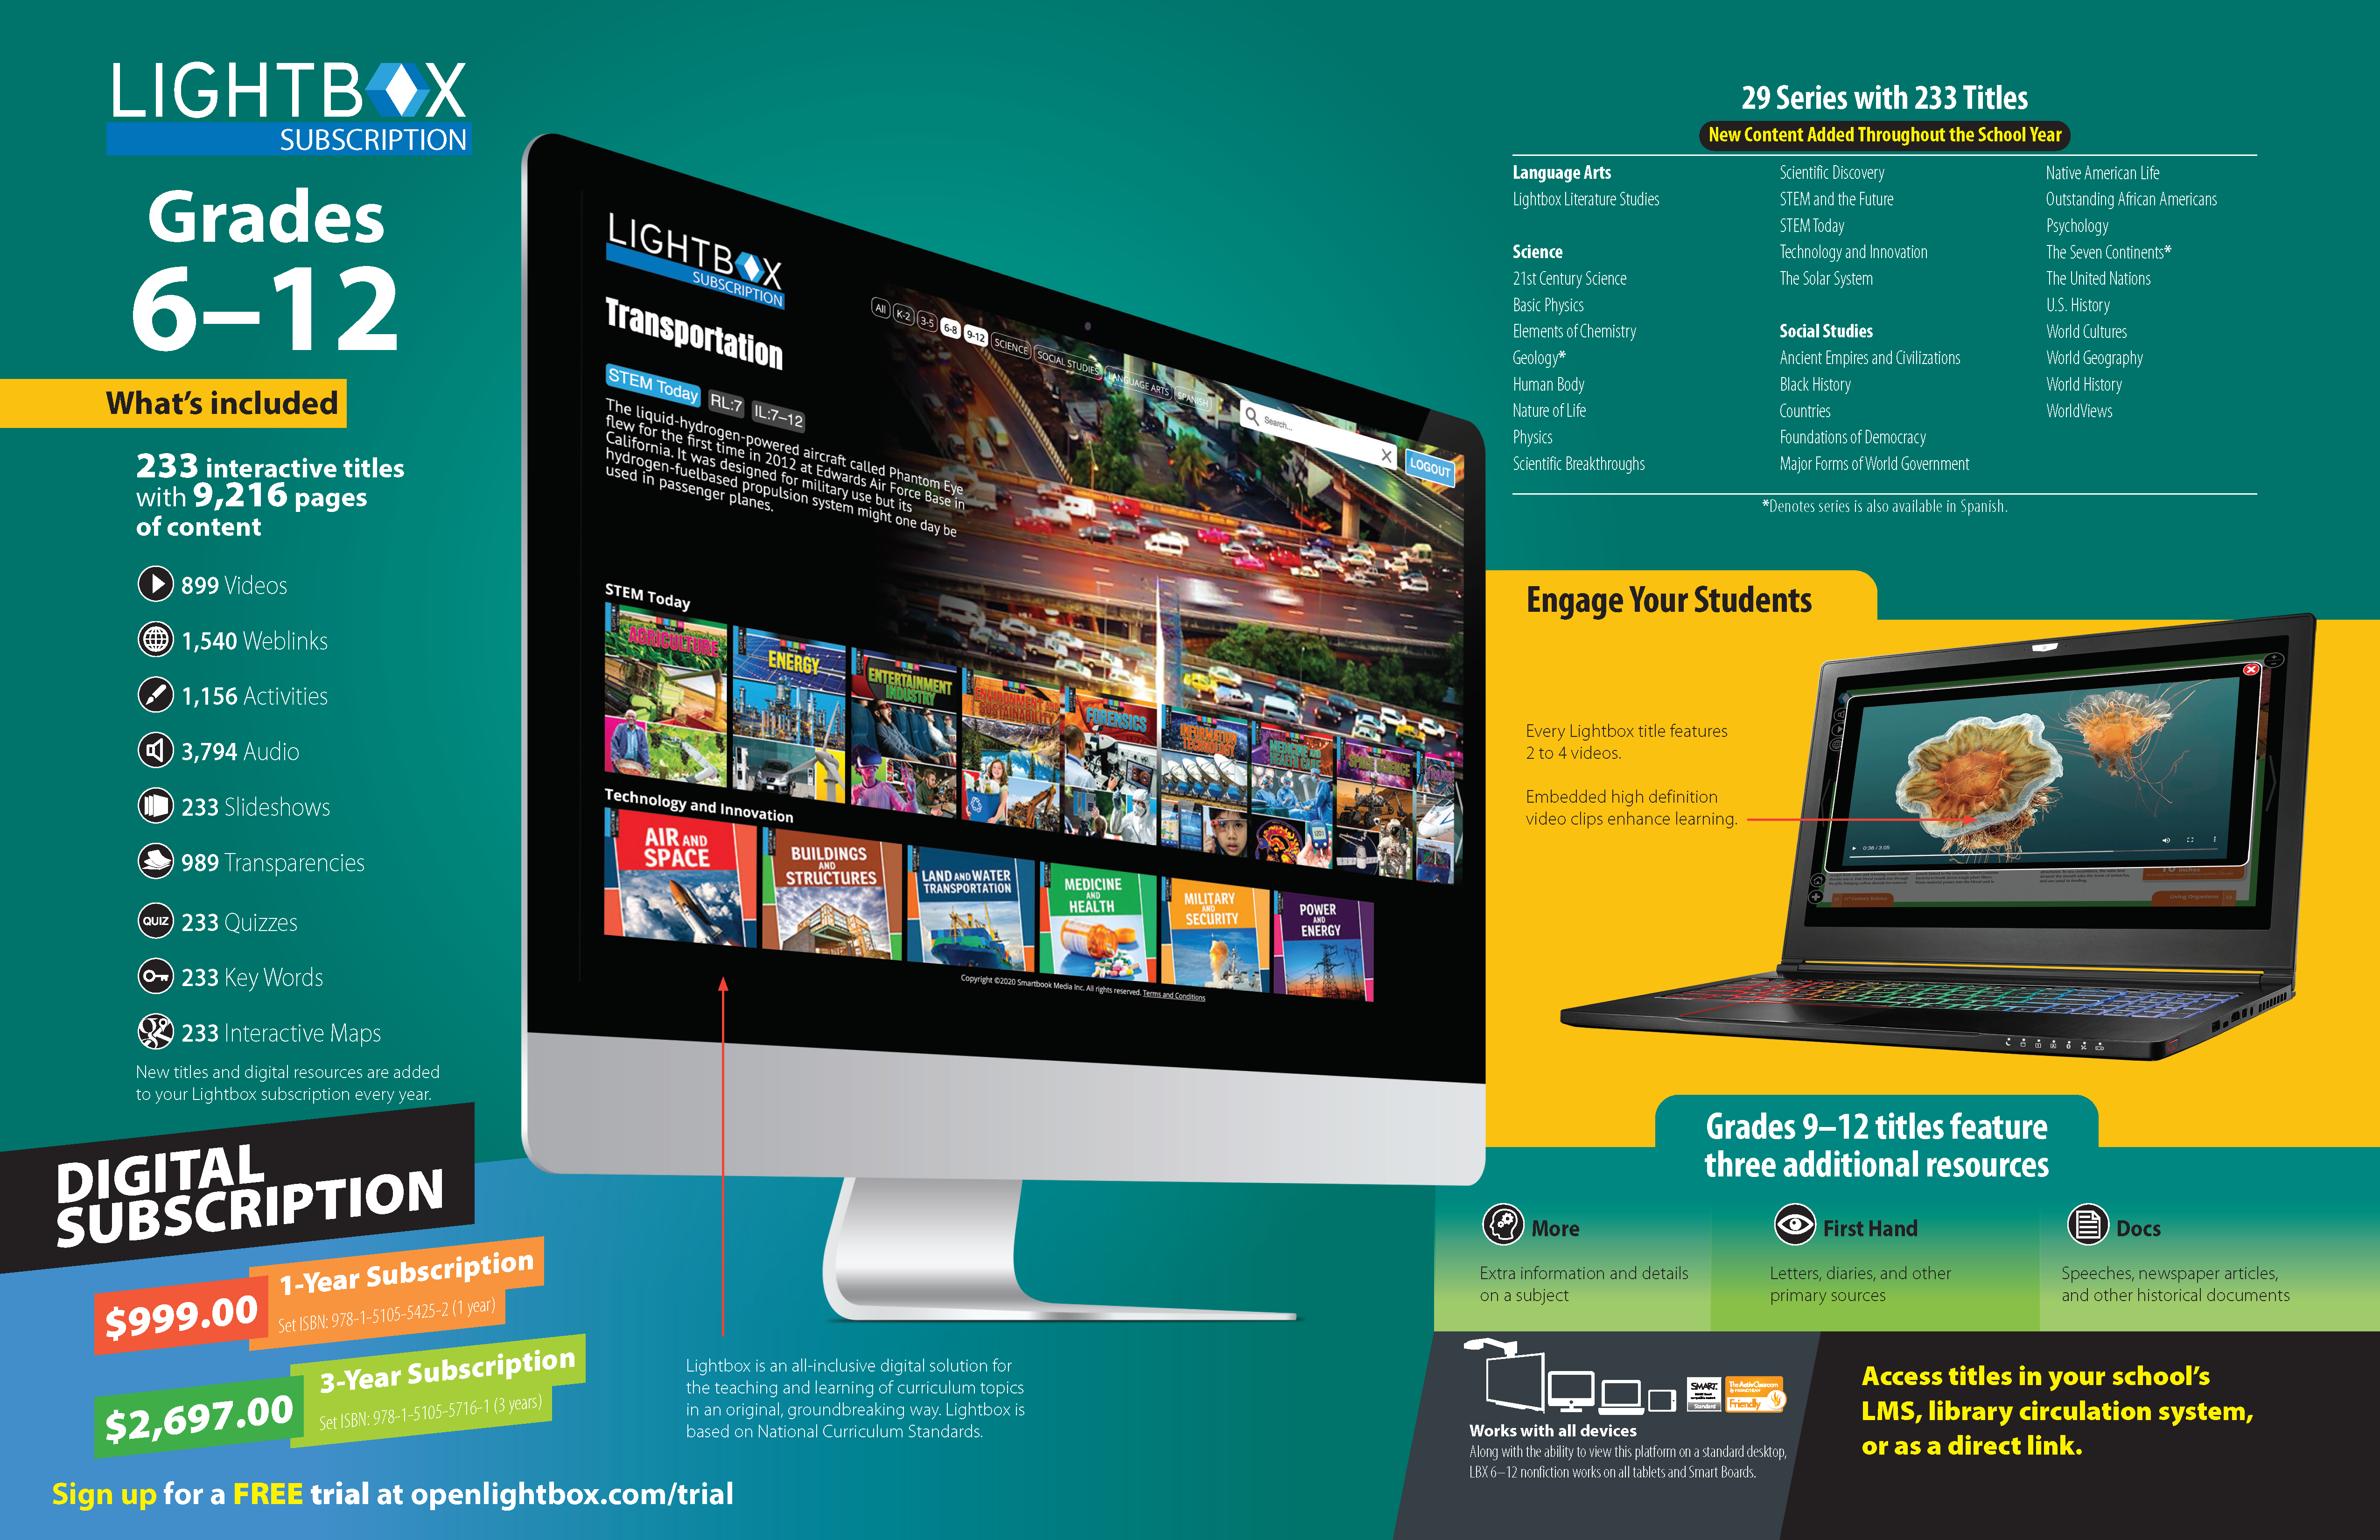 Lightbox+Subscription+Brochure+2020+Complete_Page_4